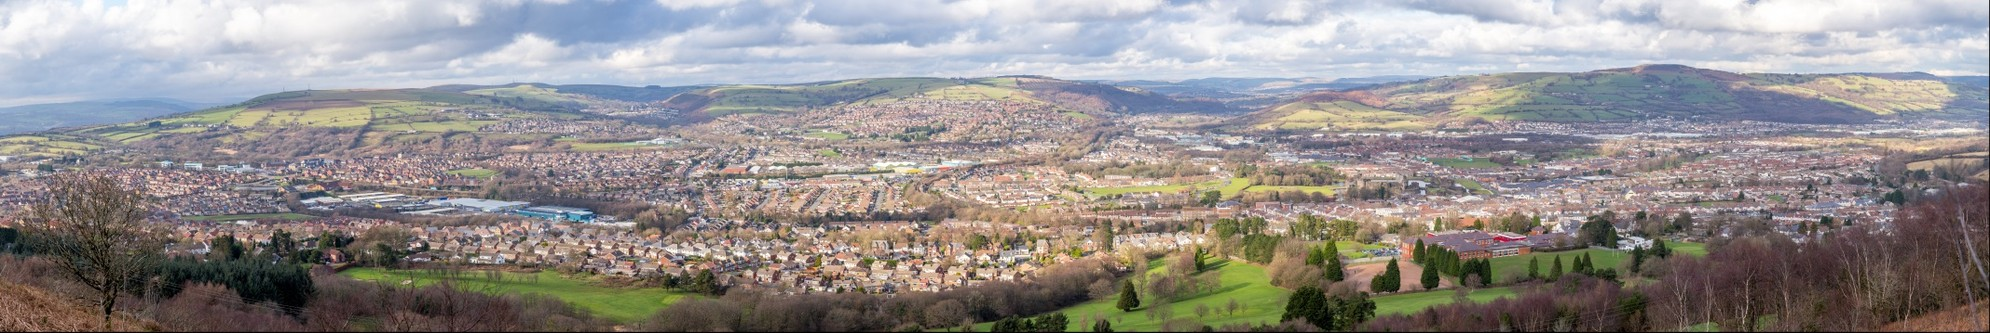 View from Caerphilly Mountain_1